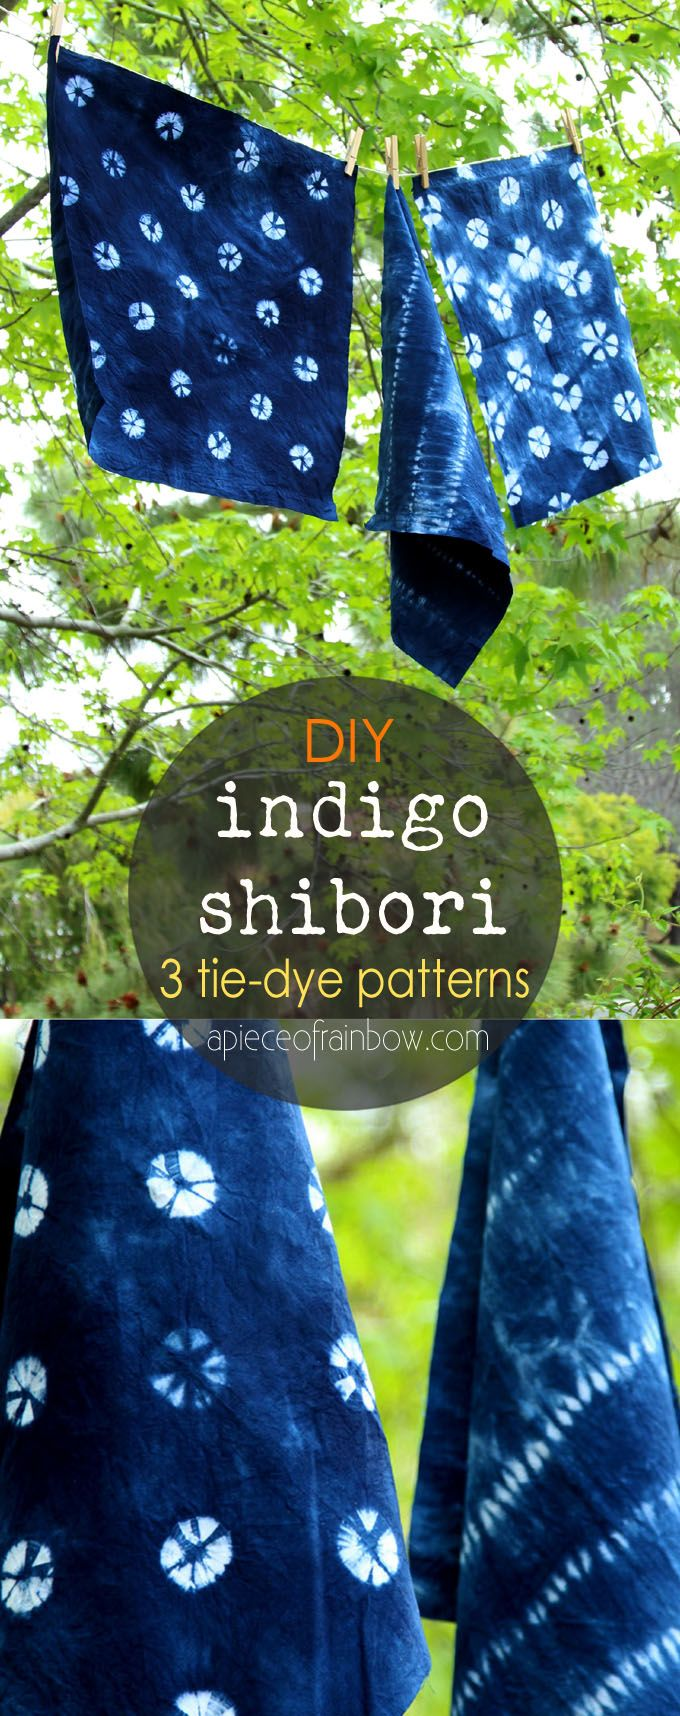 In Love With Indigo: 3 DIY Detailed tutorial on 3 beautiful tie dye techniques to create your own glorious Indigo Shibori textiles. Great for home decor or fashion projects. - A Piece Of Rainbow